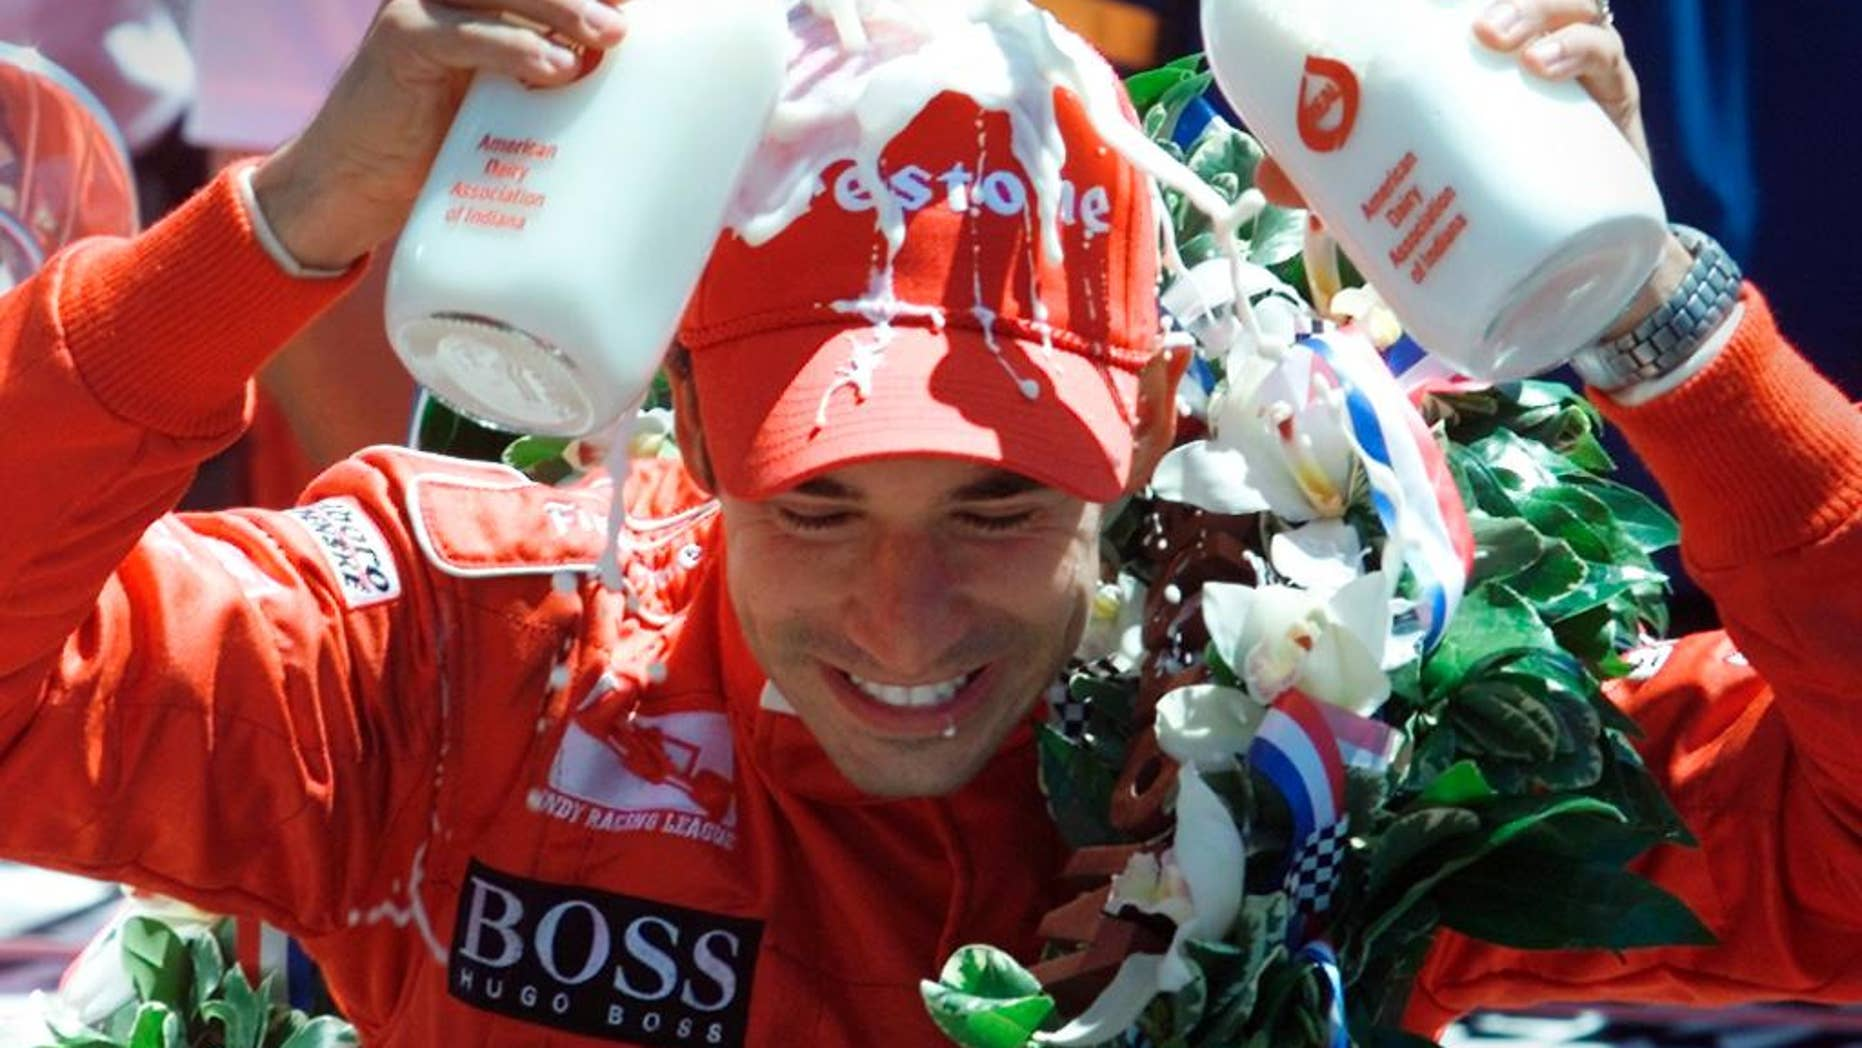 FILE - In this May 26, 2002, file photo, Indianapolis 500 champion Helio Castroneves of Brazil pours two bottles of milk onto his head after winning his second consecutive Indianapolis 500 auto race, in Indianapolis. (AP Photo/Michael Conroy, File)